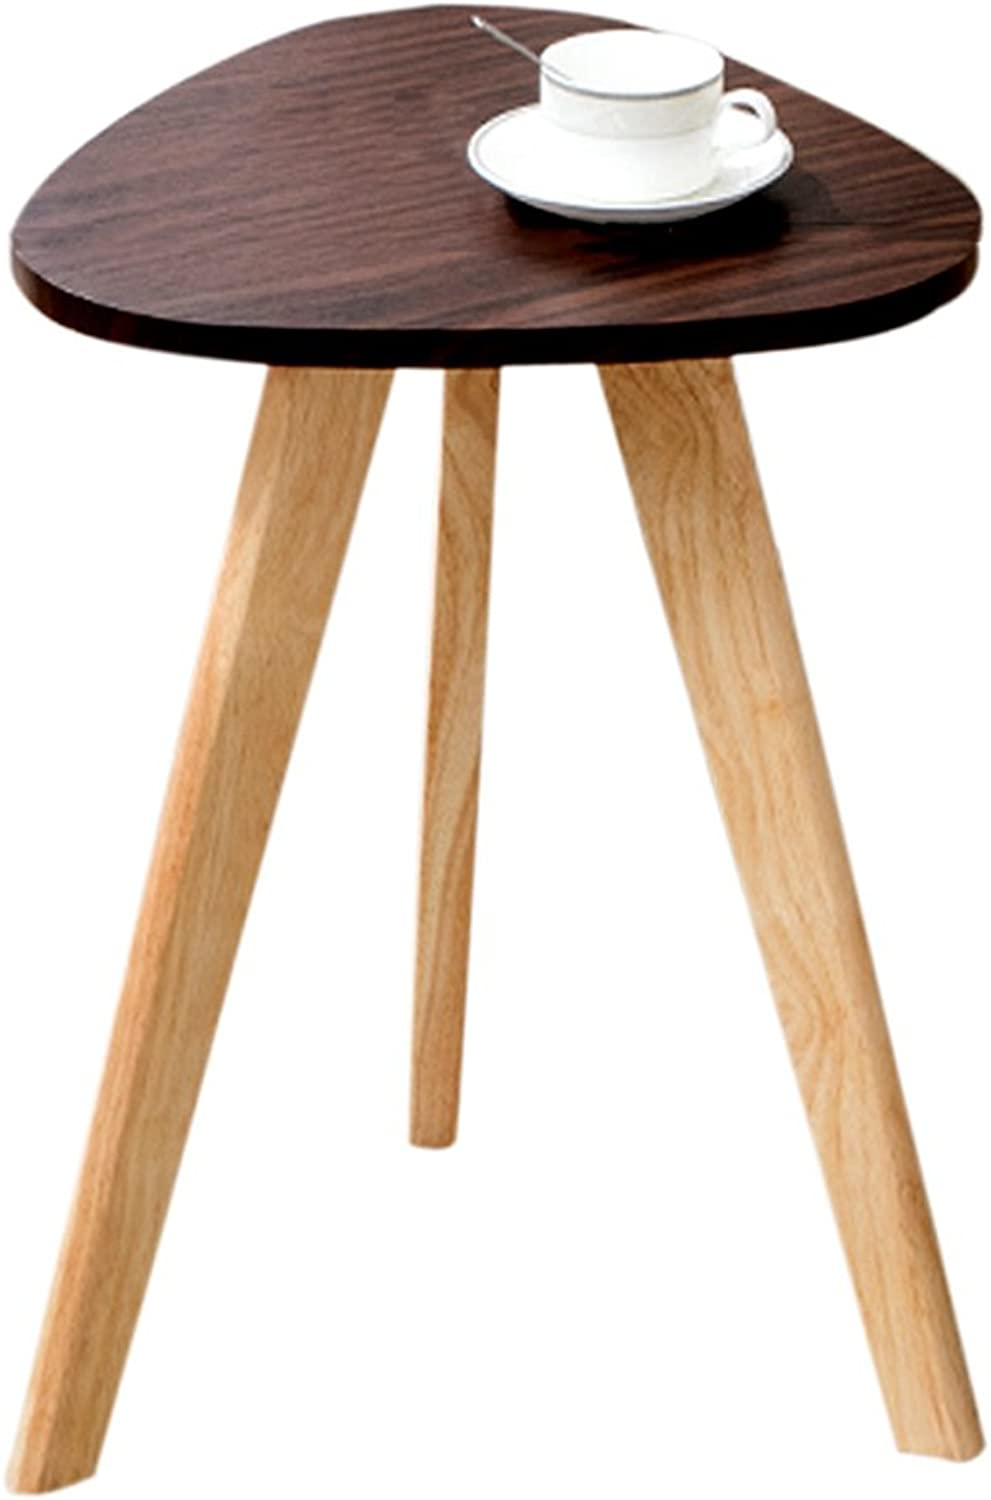 Small Coffee Table Sofa Side Table Simple Solid Wood Coffee Table Small Round Table Stylish Bedside Table Personalized Magazine Table Leisure Table Tea Break Table Strong Gravity